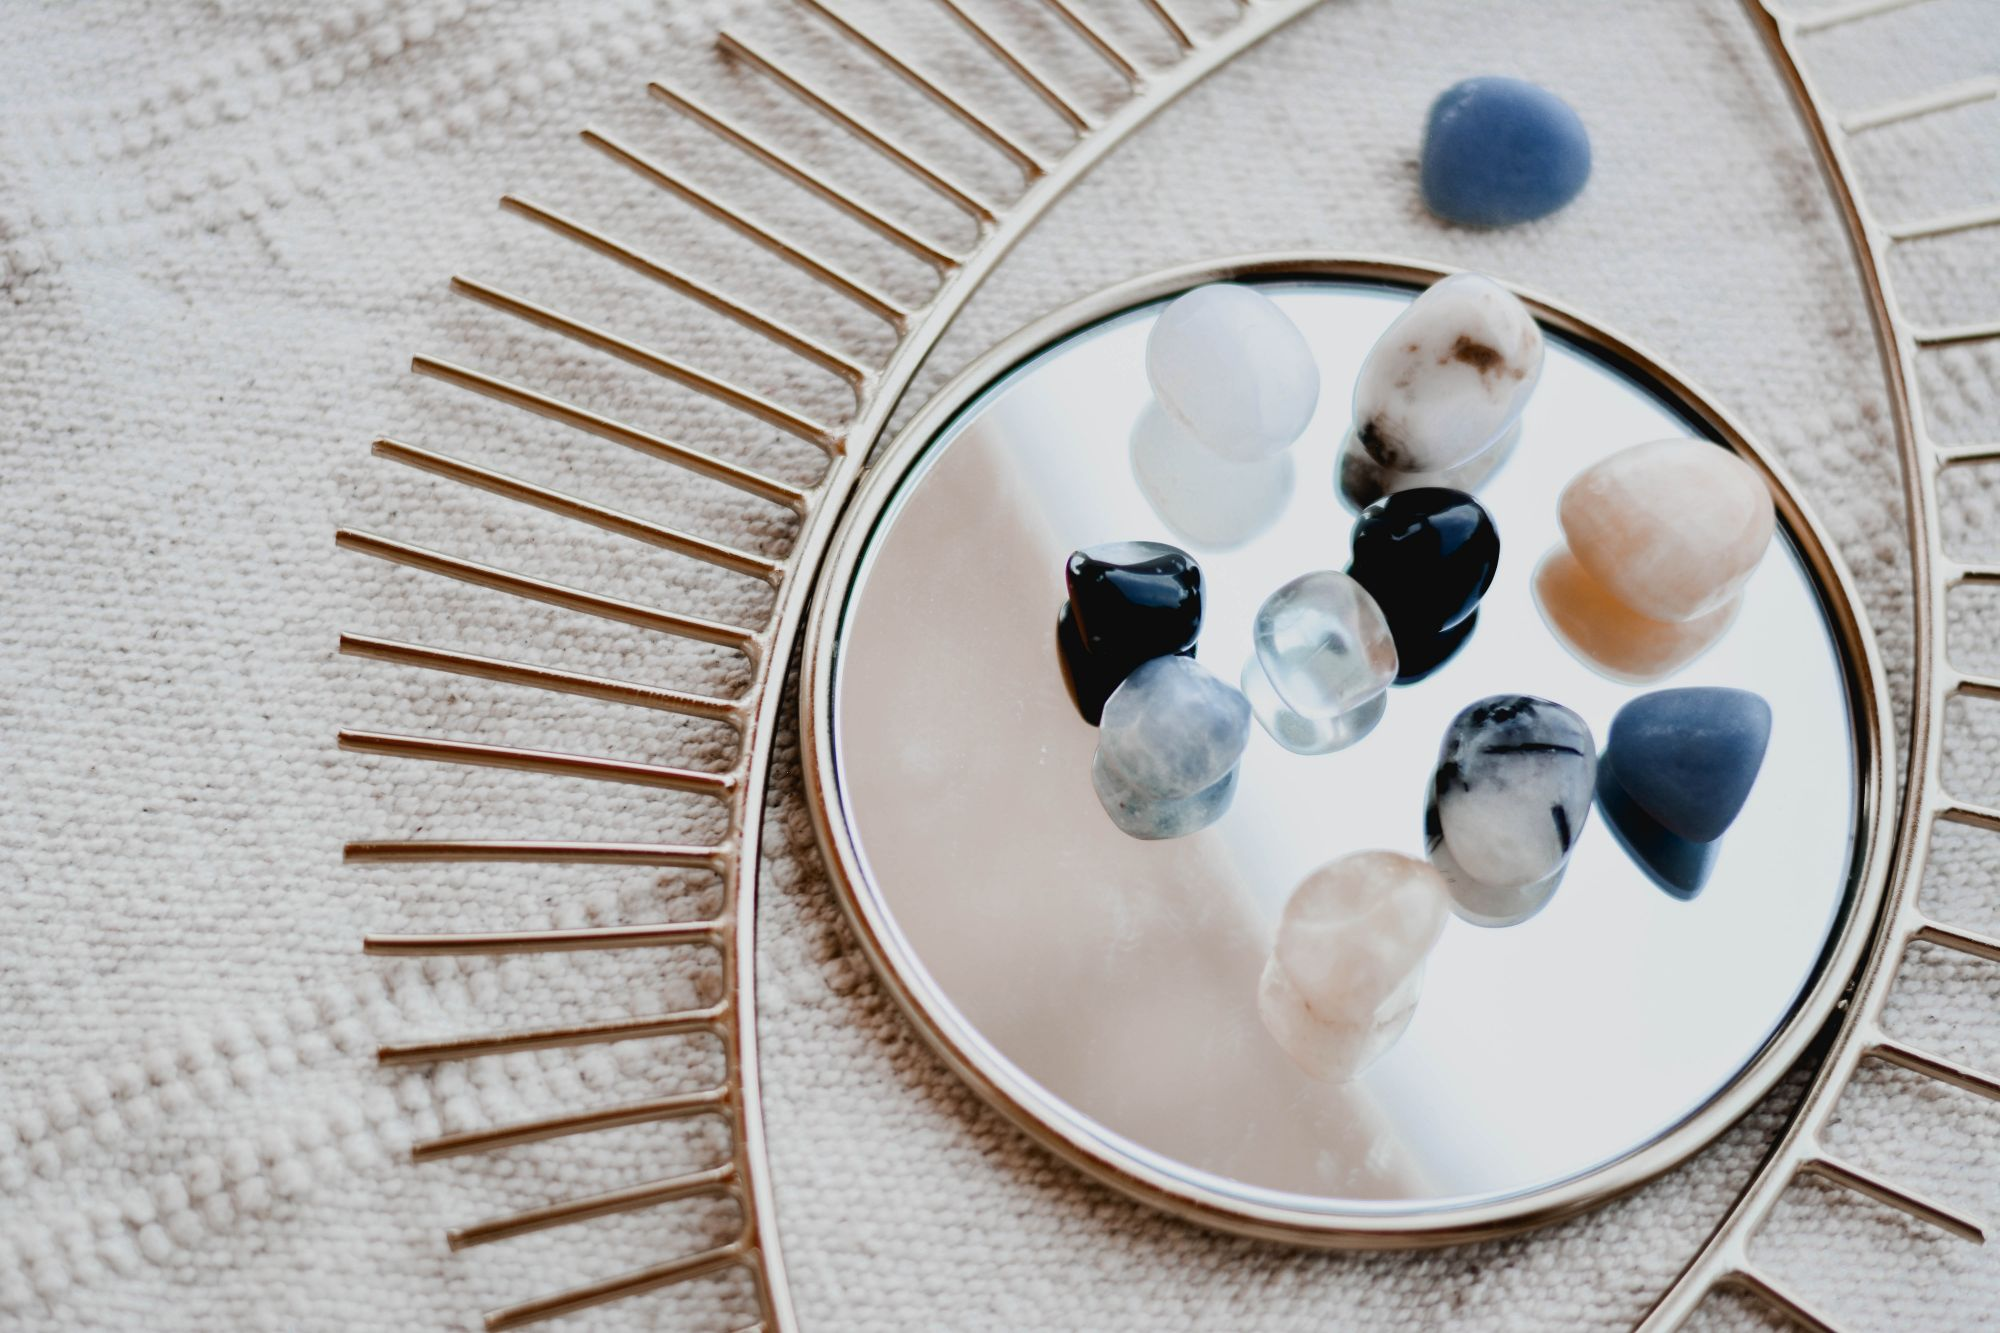 Crystal Home Decor Pieces To Fill Your Home With Positivity